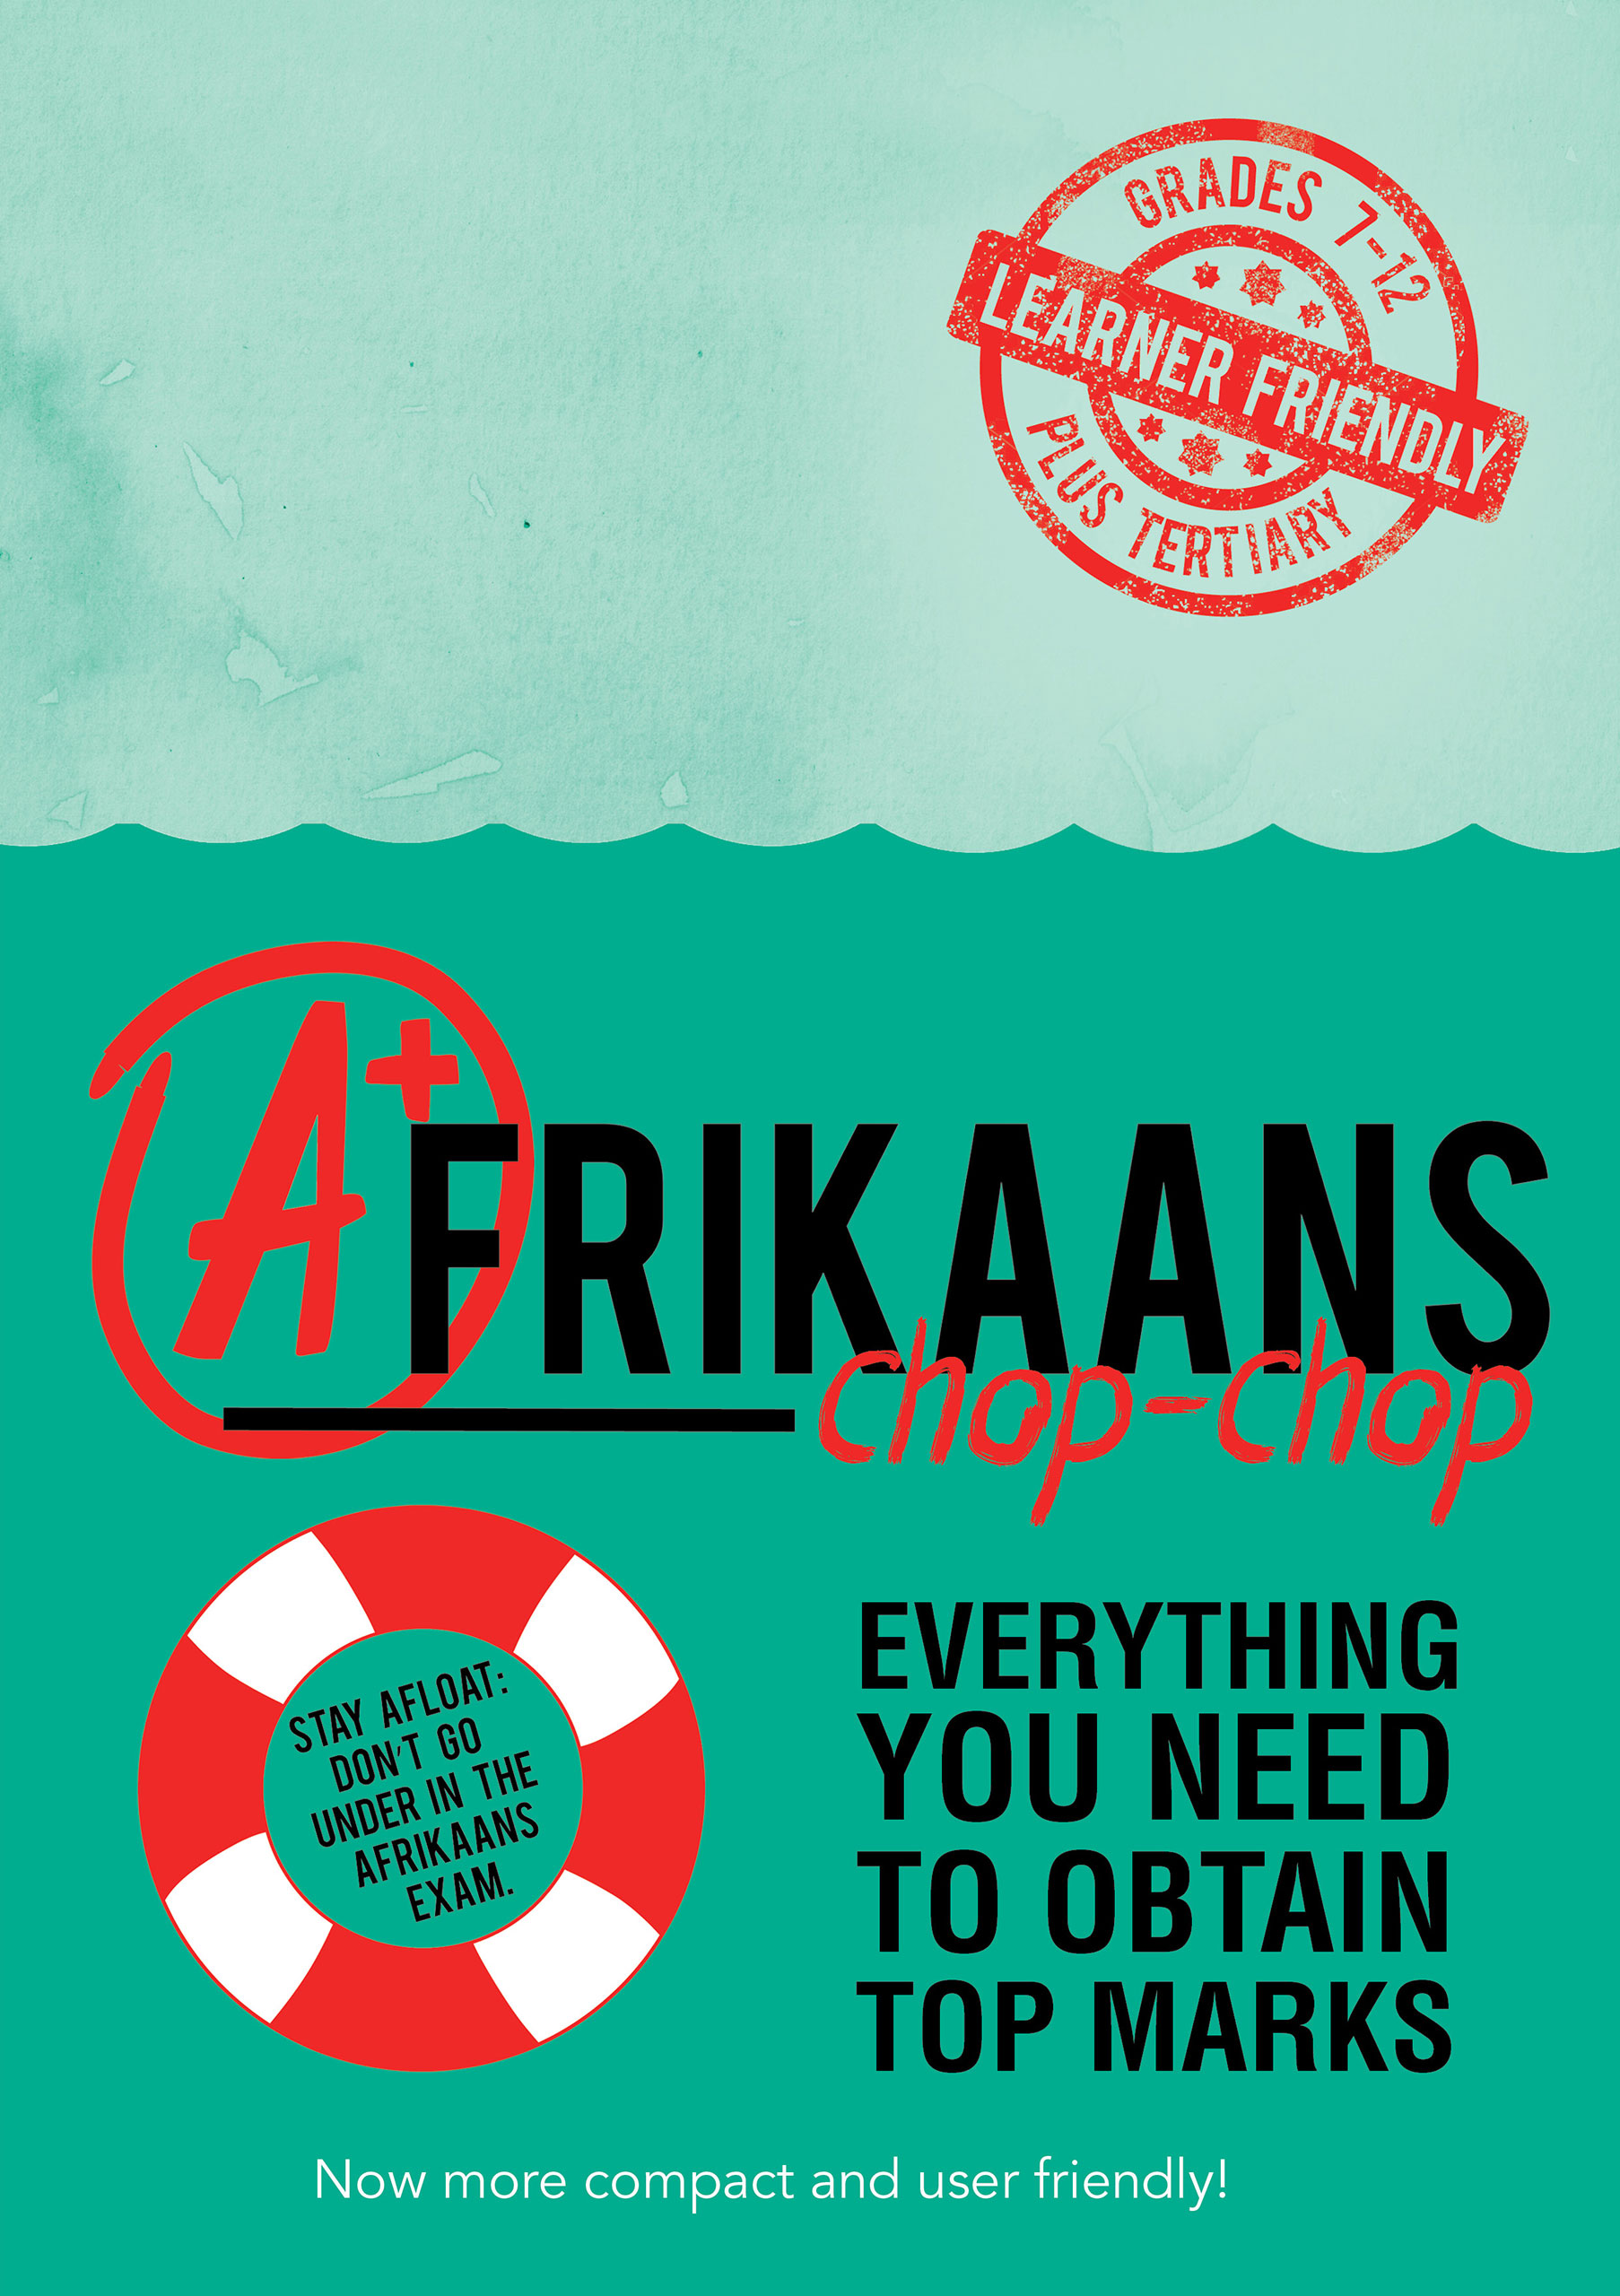 Afrikaans + Chop-Chop : Everything You Need to Obtain Top Marks